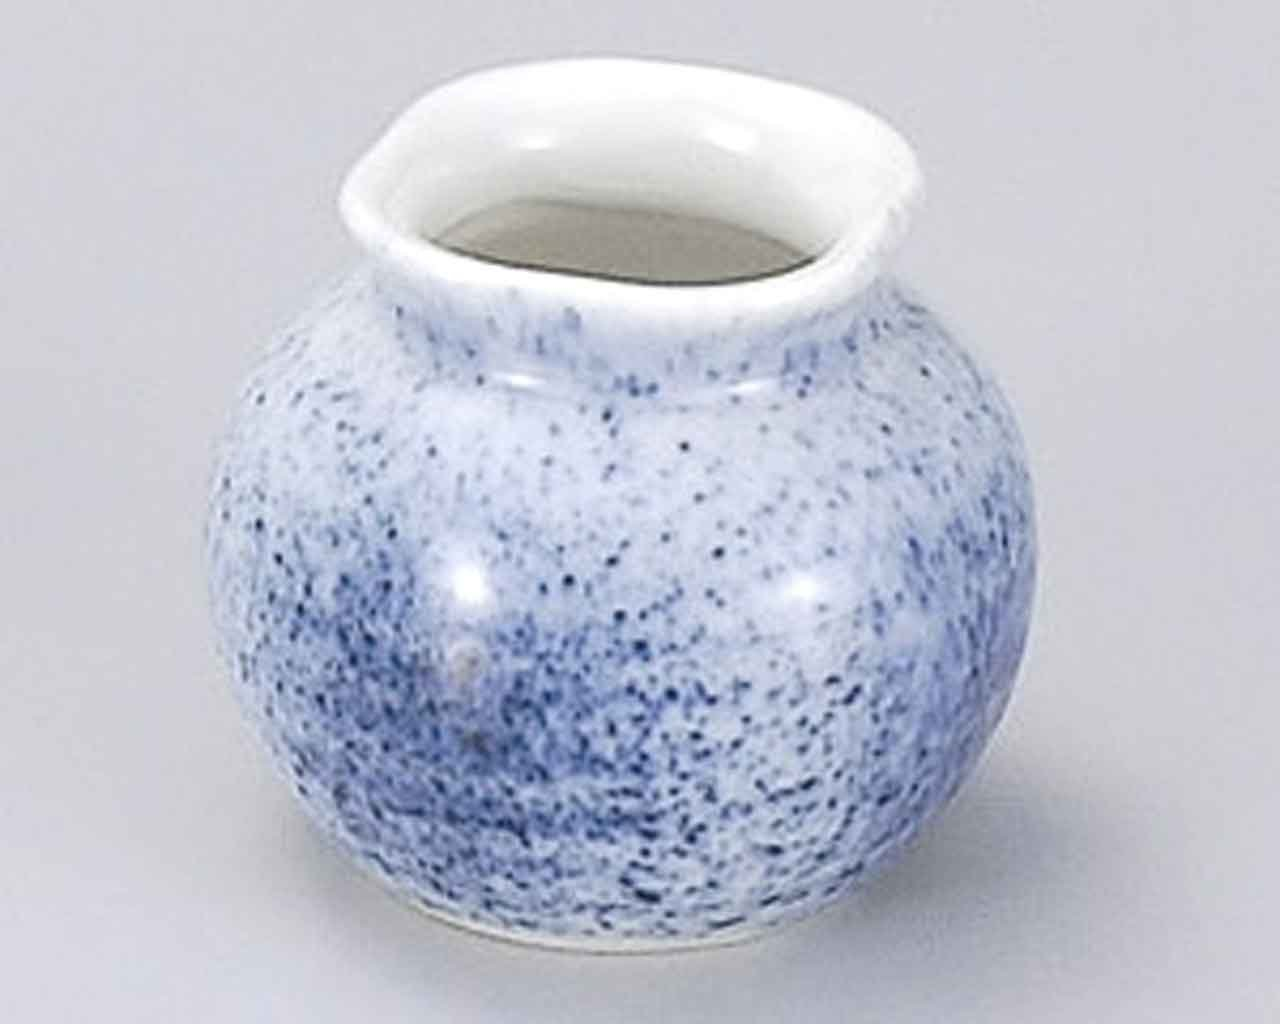 Sumi Blue Blow 2.2inch Set of 5 Toothpick holders White porcelain Made in Japan by Watou.asia